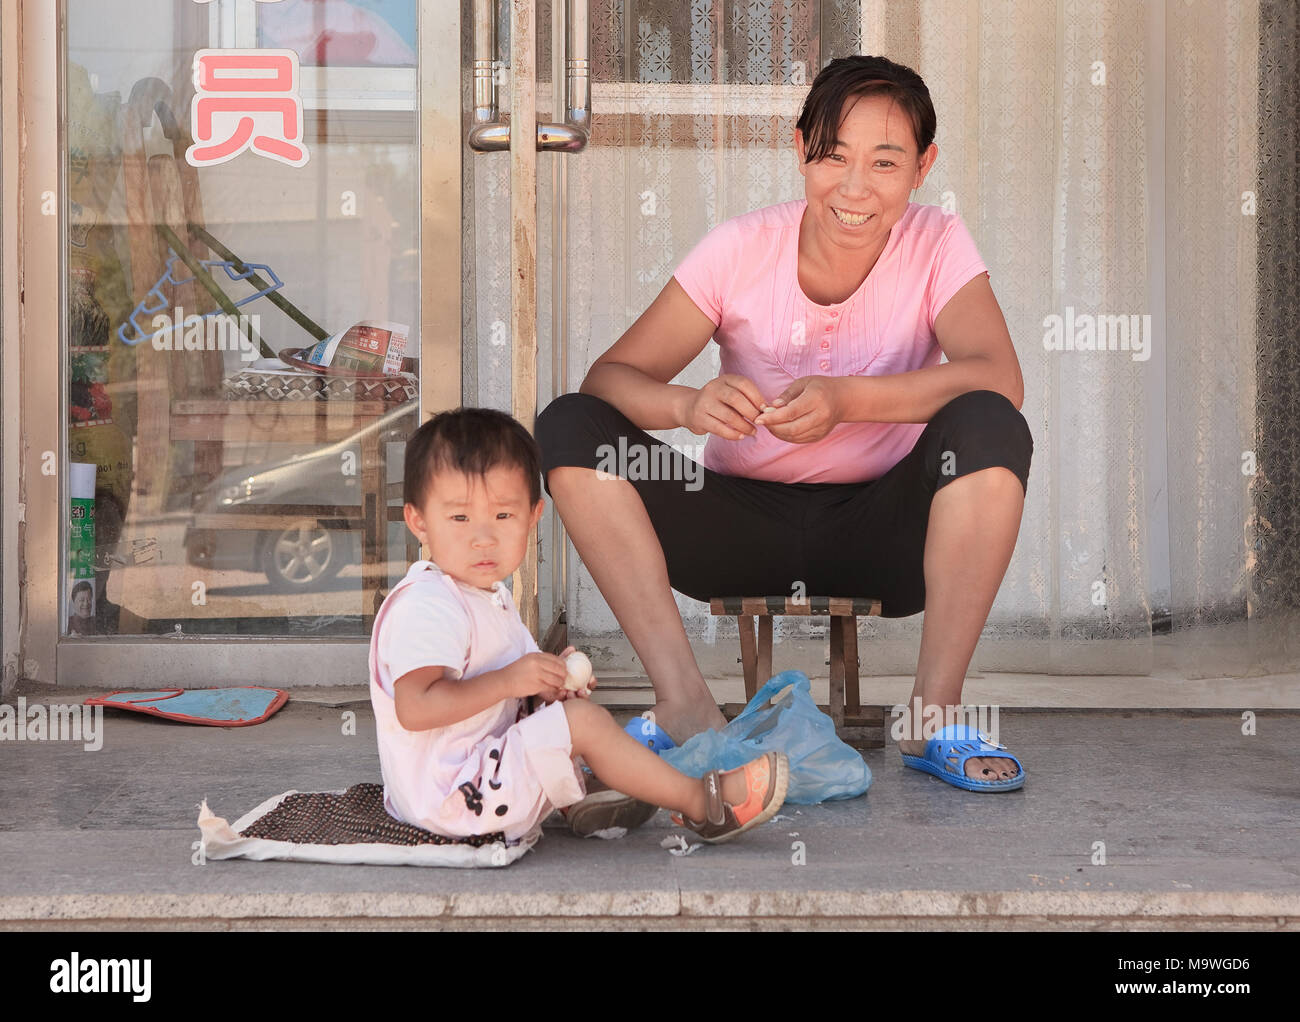 BEIJING-AUGUST 16, 2010. Woman with child in front of house. China has ended the one-child policy after 35 years, allow couples having two children. - Stock Image